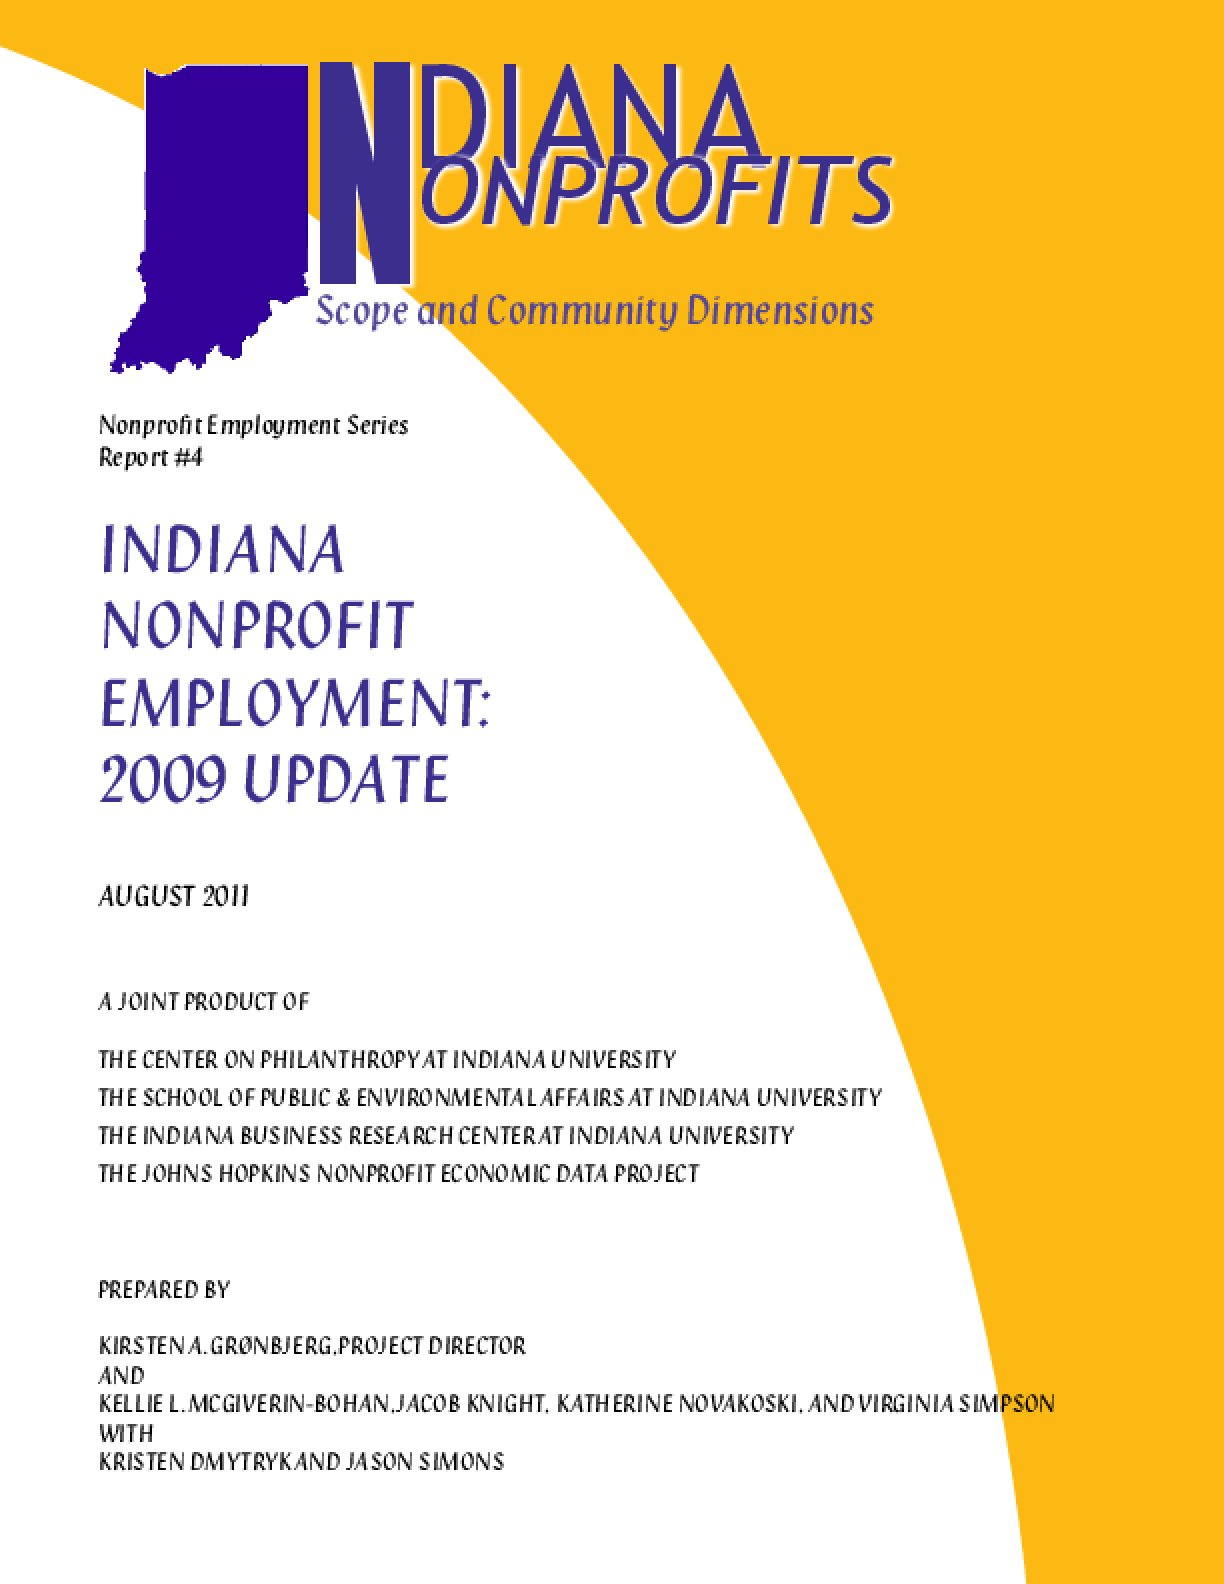 Indiana Nonprofit Employment: 2009 Update